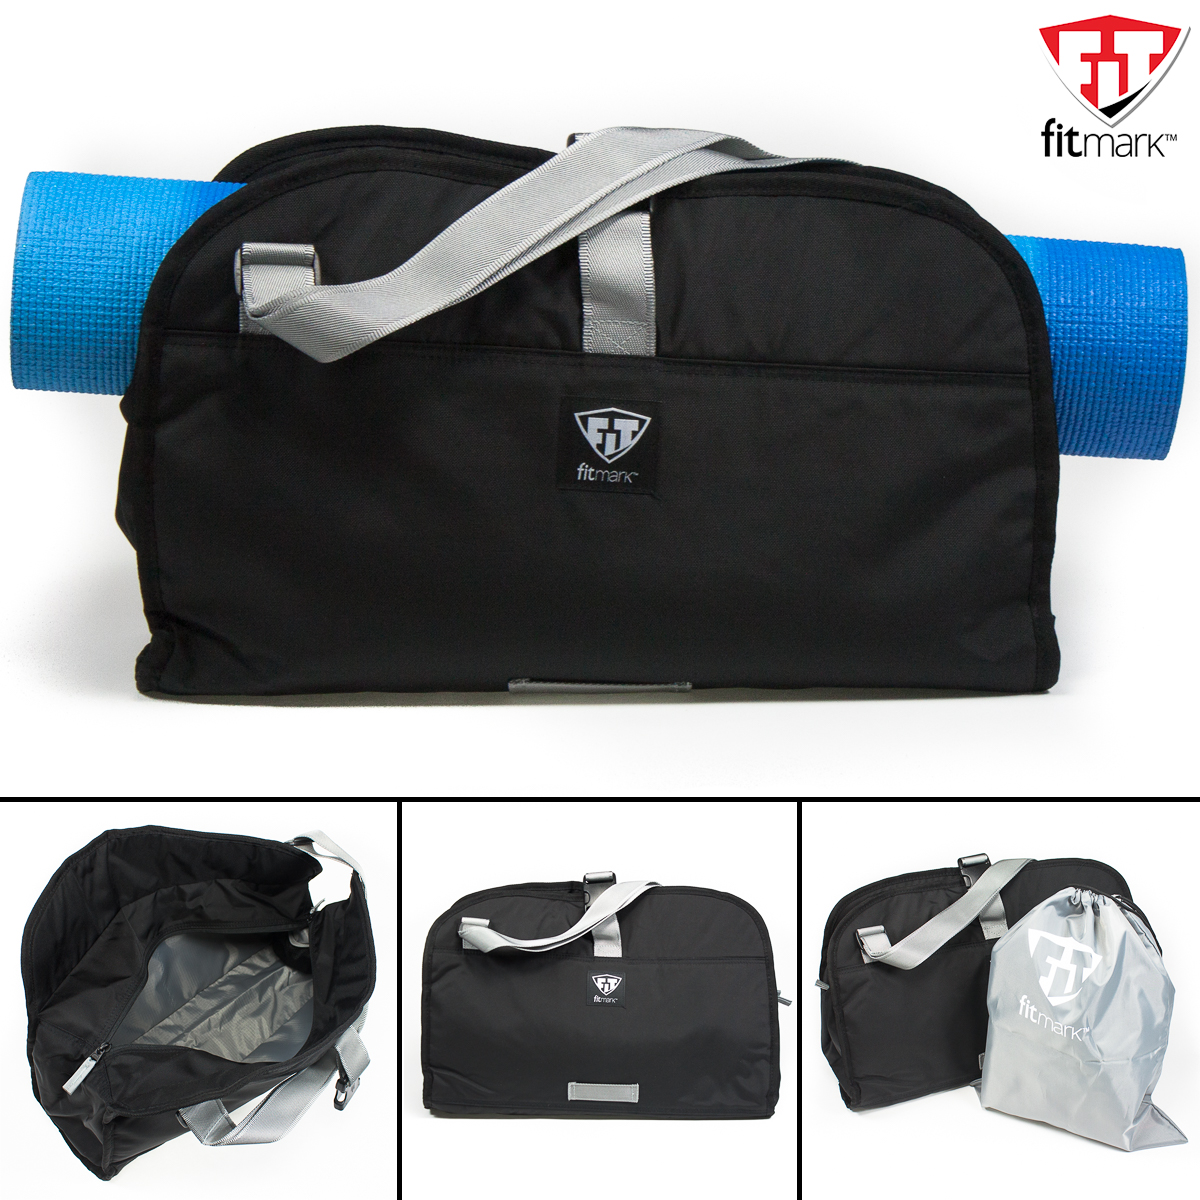 Fitmark Namaste Tote Gym Yoga Crossbody Messenger Duffle Black +Laundry/Shoe Bag